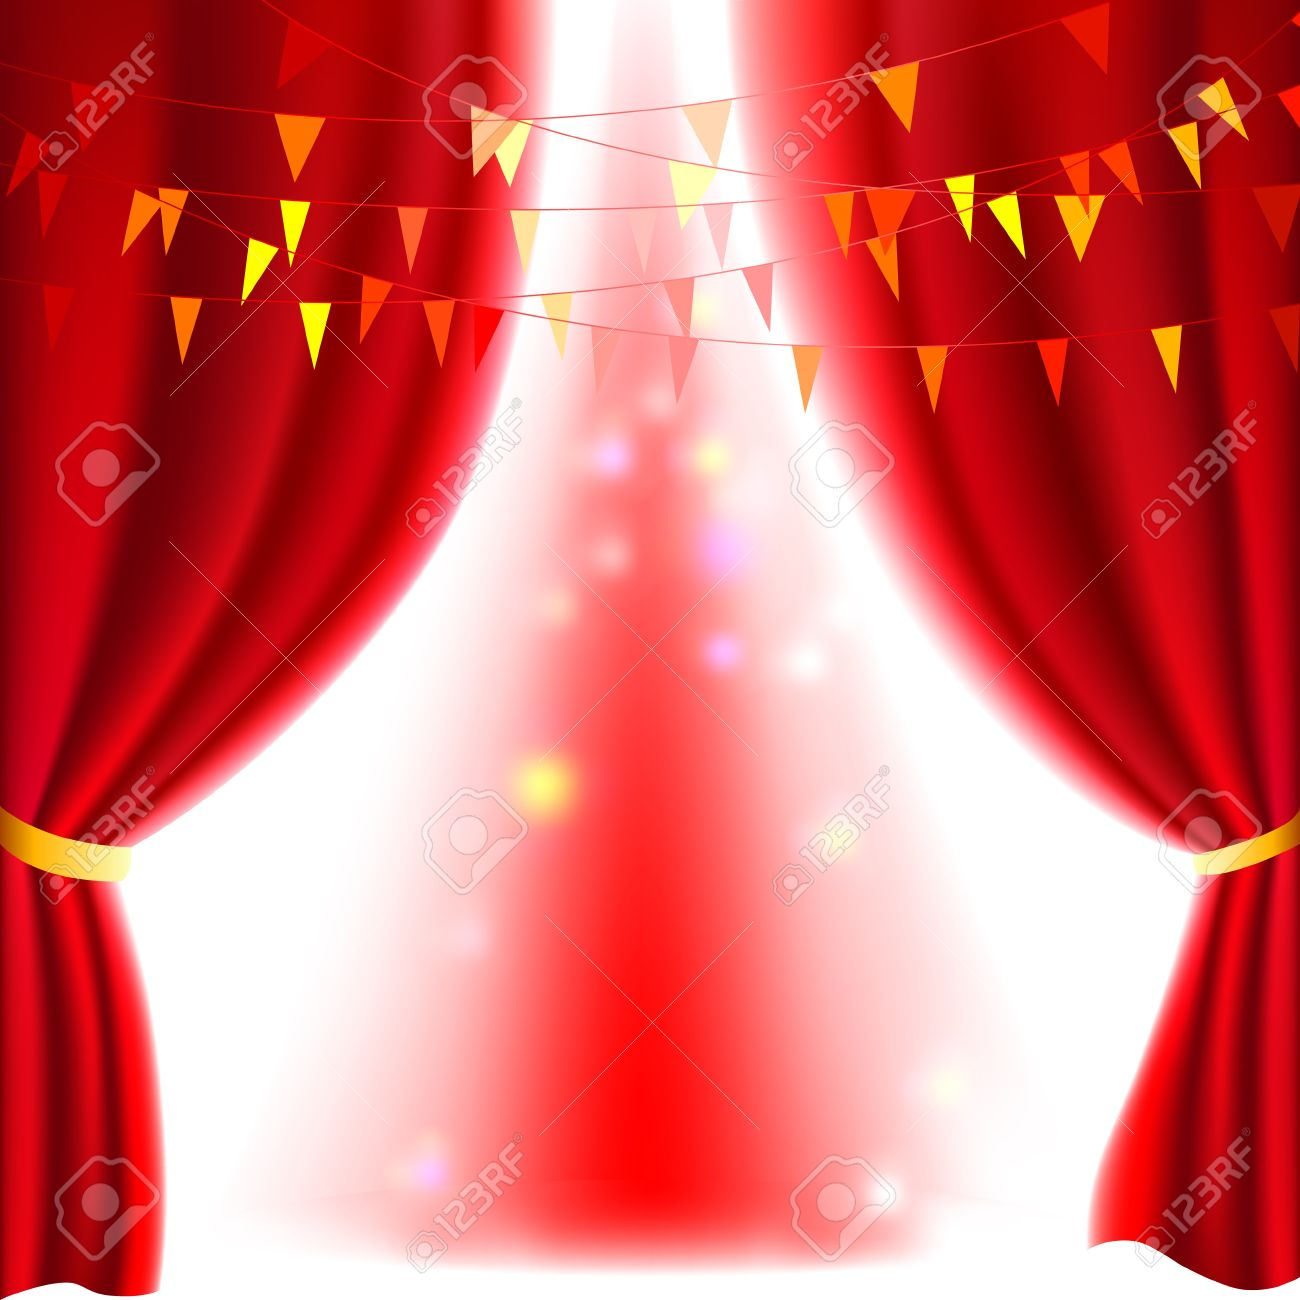 Stage curtains spotlight - Movie Or Theatre Curtain With A Bright Spotlight Stock Vector 14088182